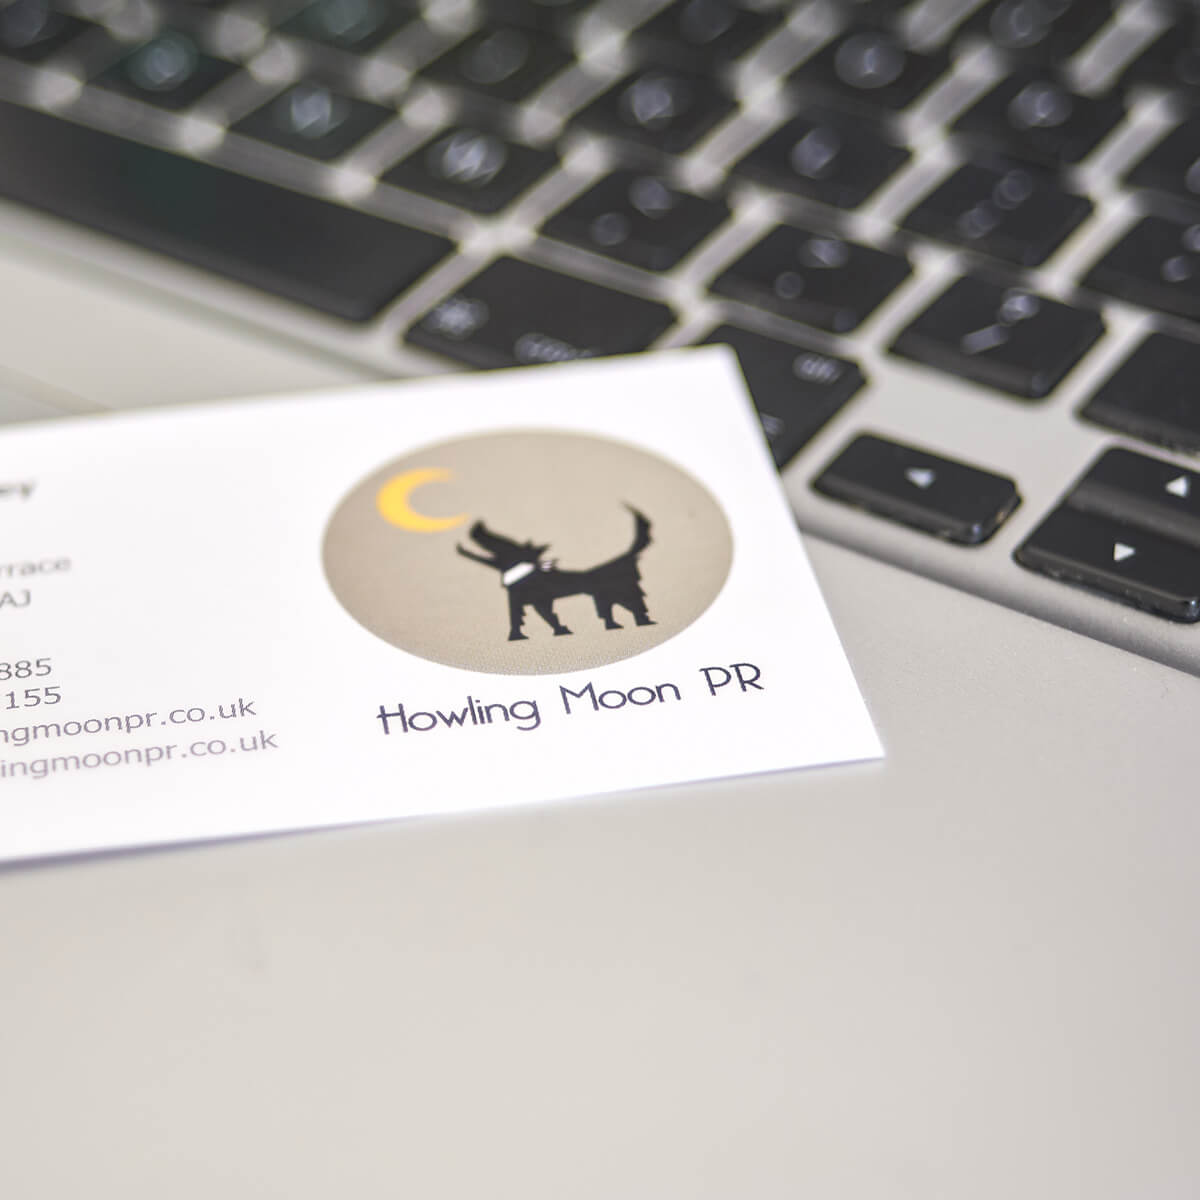 Howling Moon PR business card for their guest blog entry